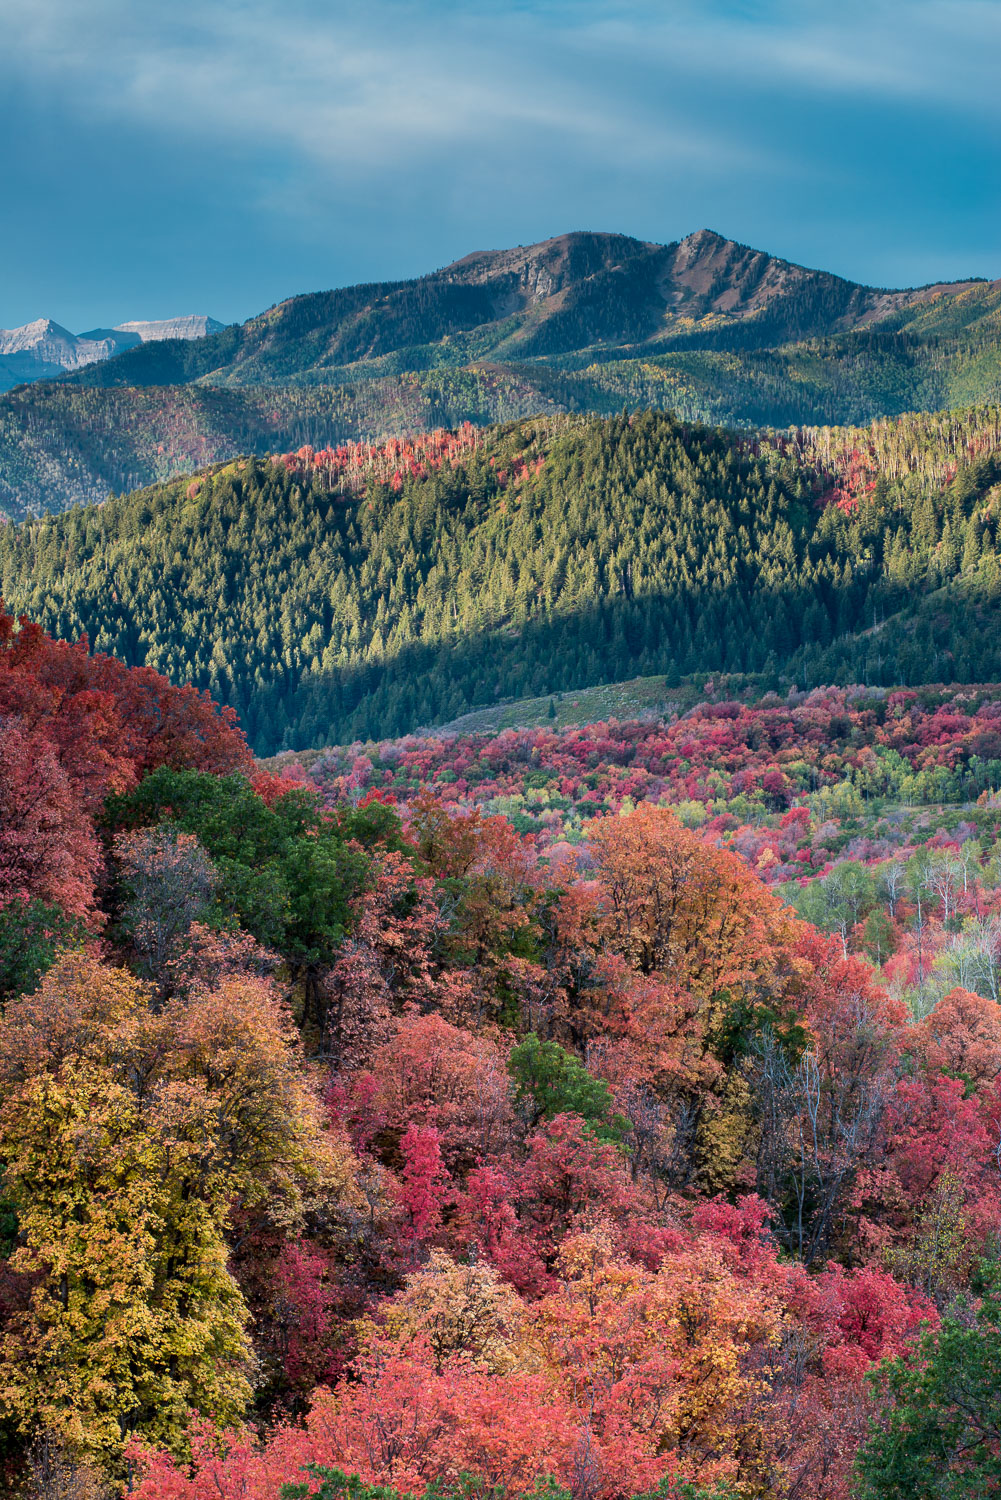 Kaleidoscopic Maples and Oaks, Wasatch Mountains near Midway and